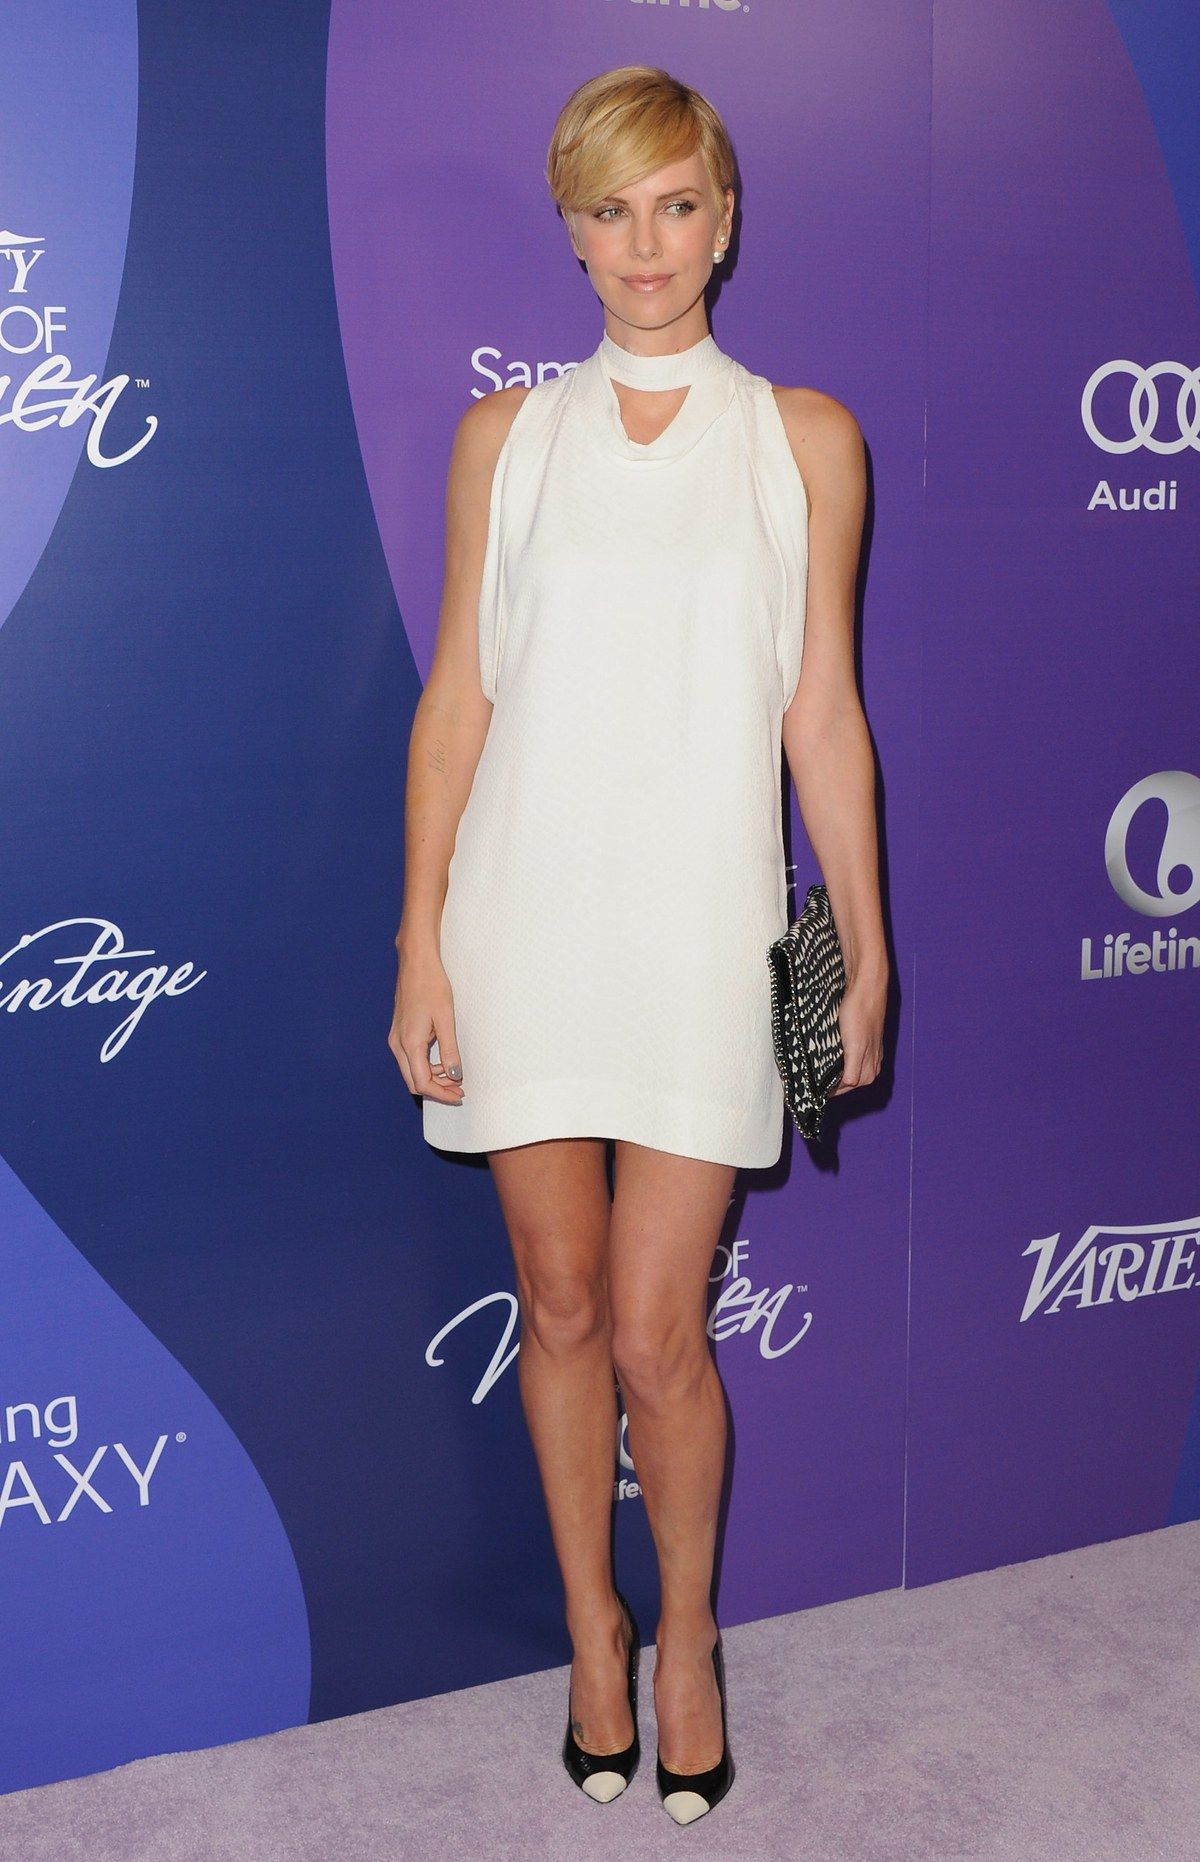 Charlize Theron in Stella McCartney at the 5th annual Variety Power of Women party in Beverly Hills, California, October 2013. Photo by Getty Images.